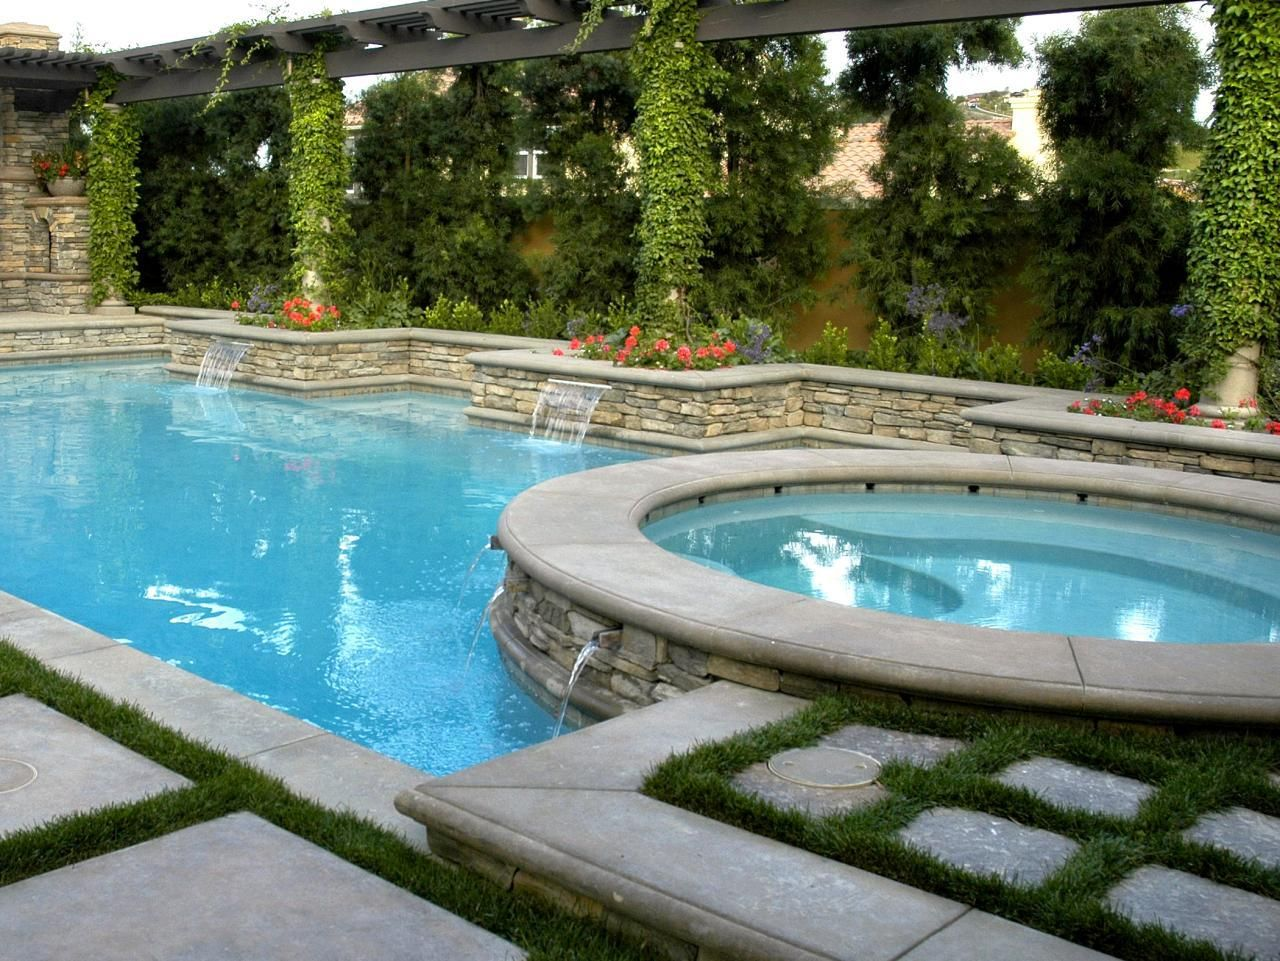 Pool Spa Design Ideas Inground Pool Landscaping Ideas Bistrodre Porch And Backyard Pool Backyard Pool And Spa Pool Landscaping